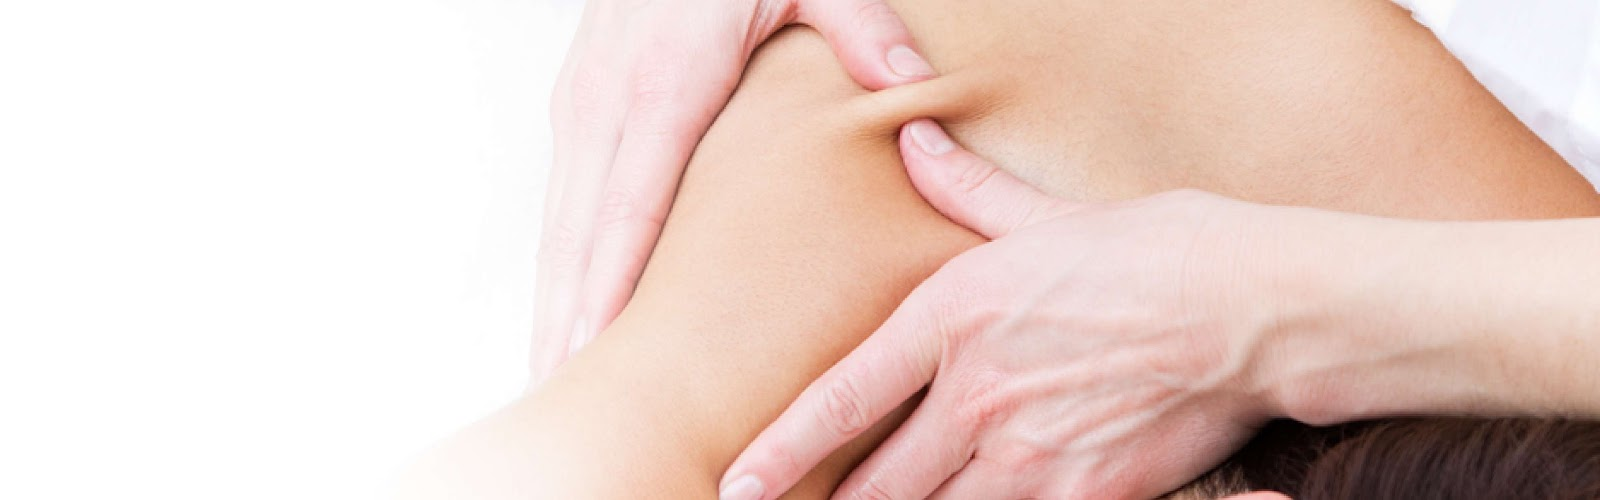 massage during pregnancy london